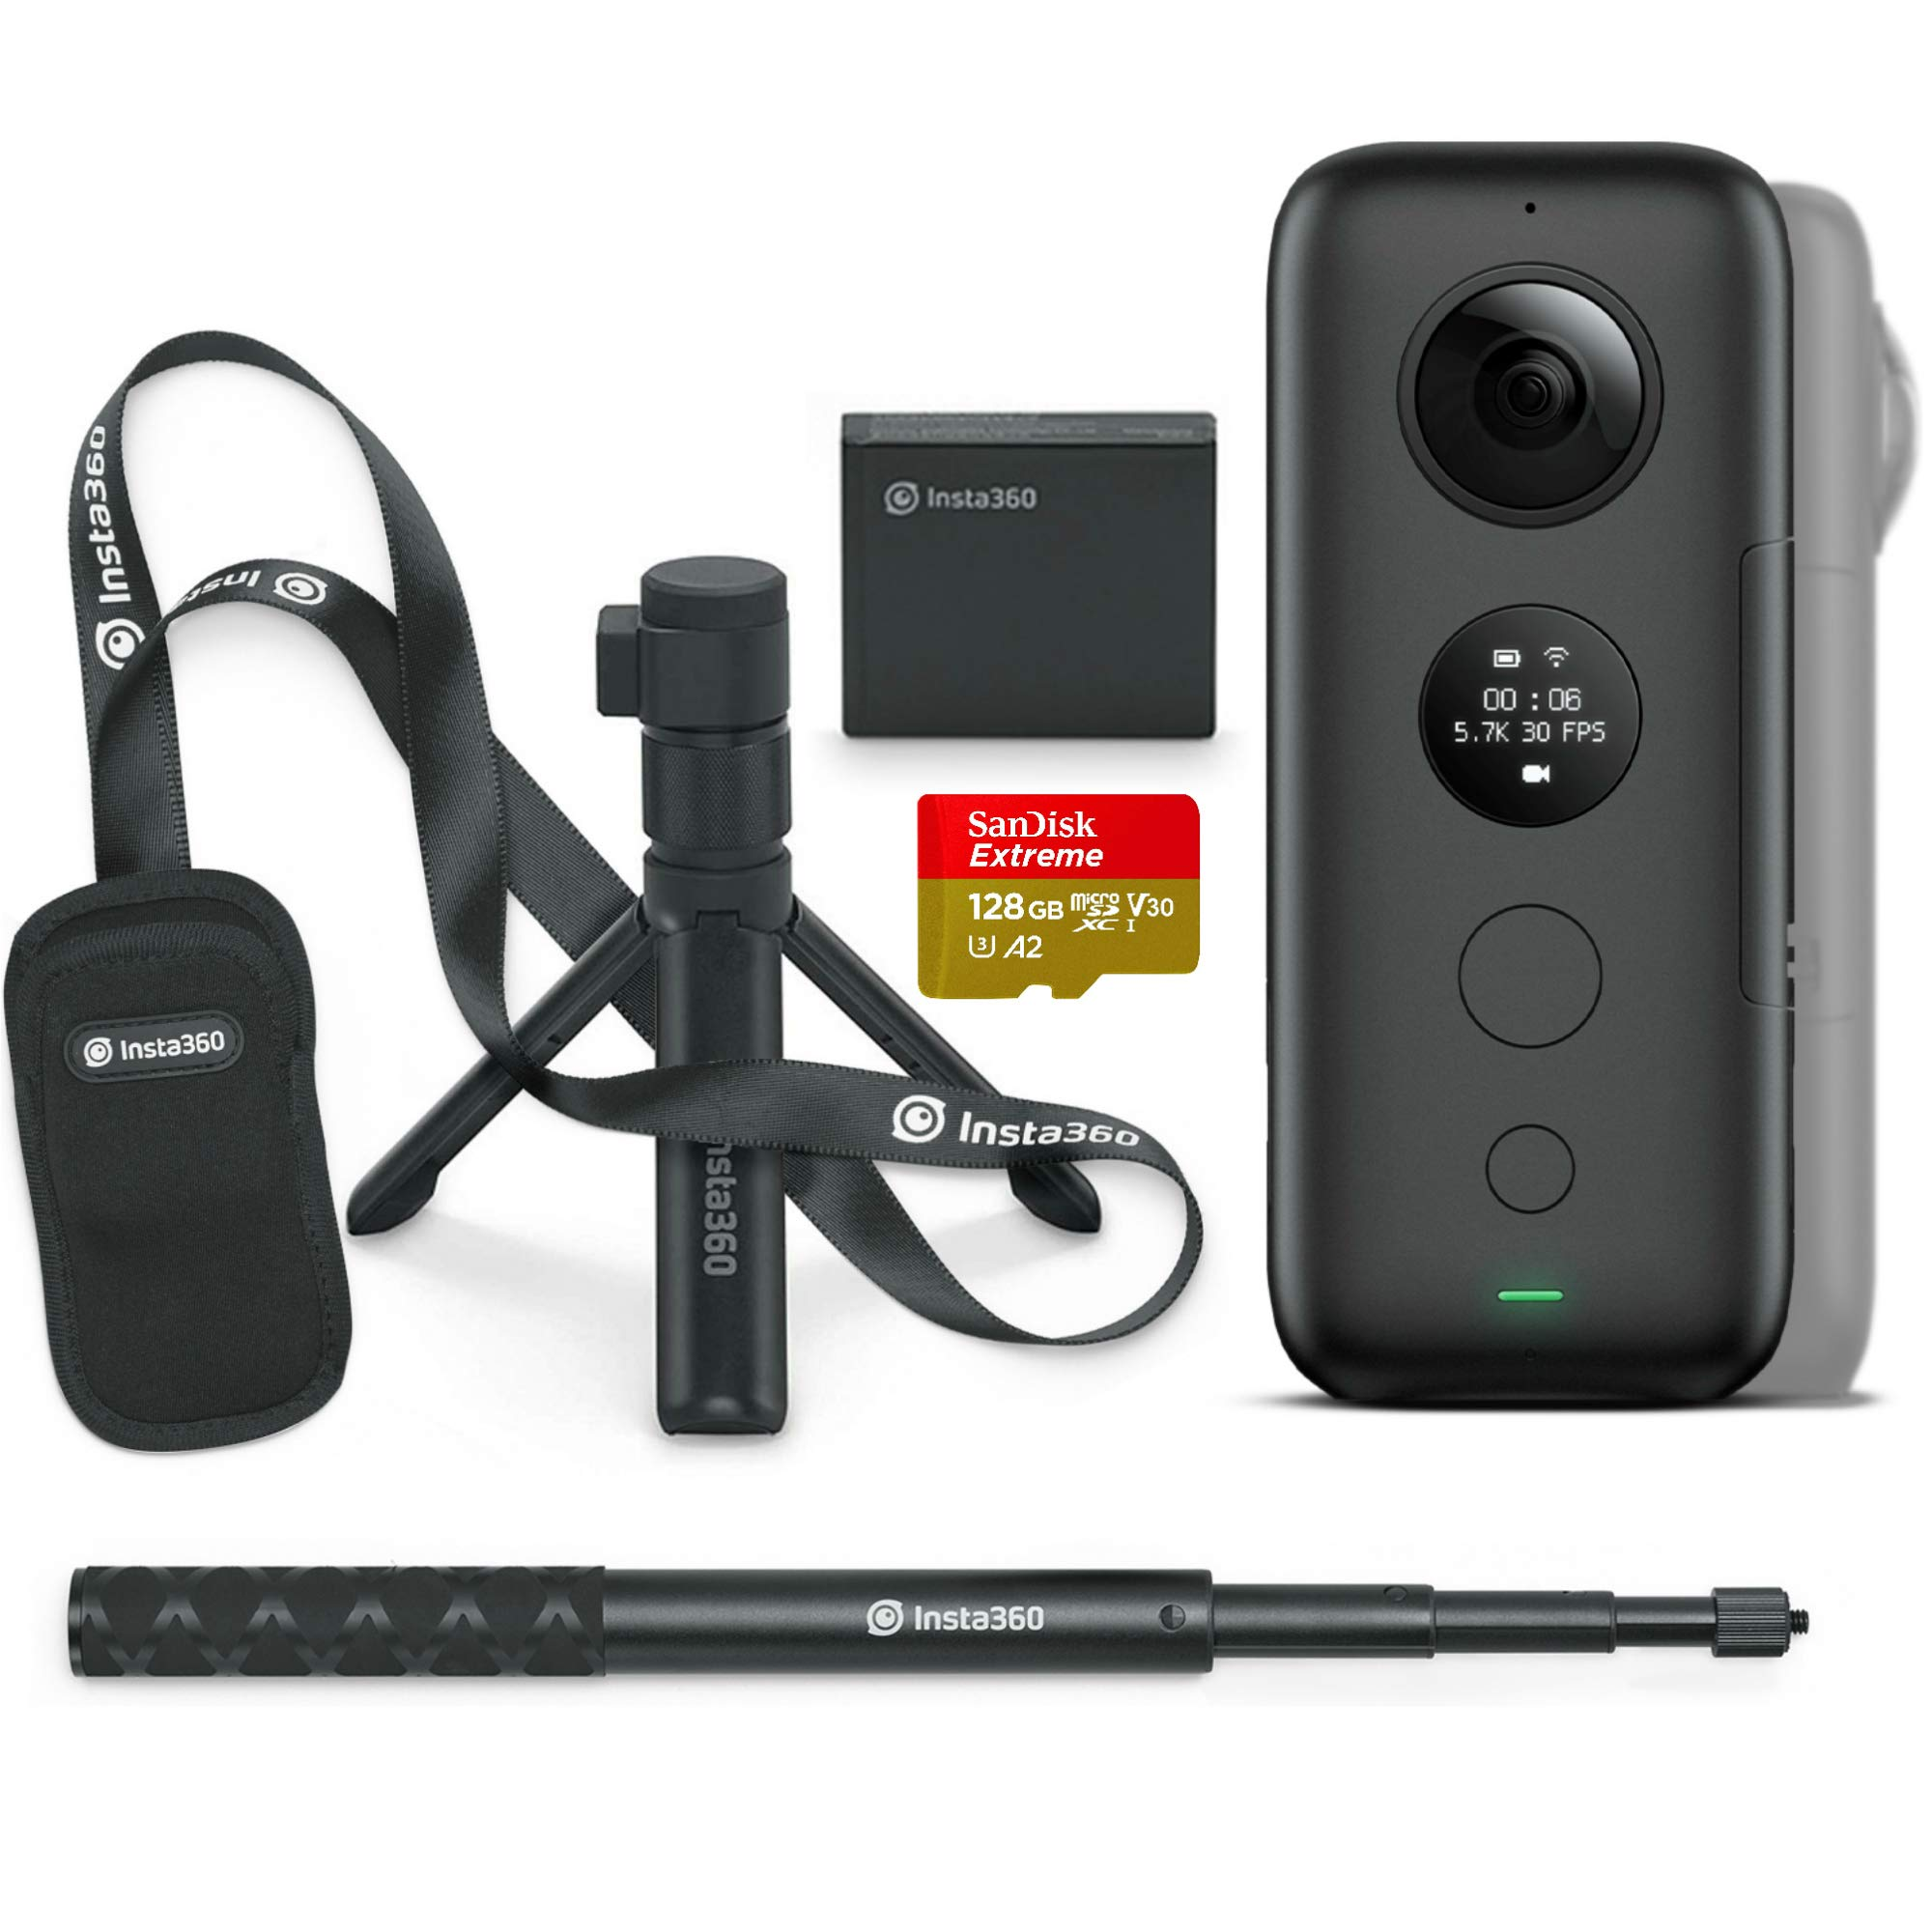 Insta360 ONE X All-in-One Bundle: Action Video Camera + Bullet Time Handle + Invisible Selfie Stick - FlowState Stabilization, 360 Degree Action 128 GB V30 microSDXC Card Included, Authorized Dealer by Insta360